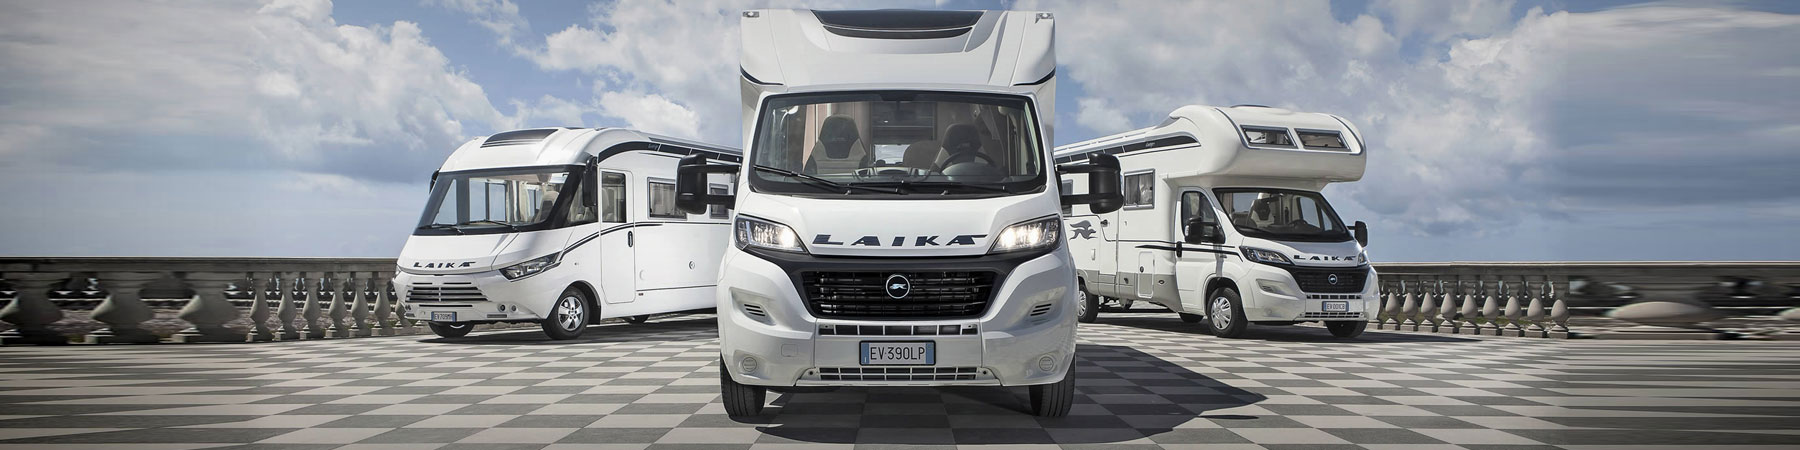 Innovative Motorhome Rental Northern Ireland  The ONLY Way To See Ireland